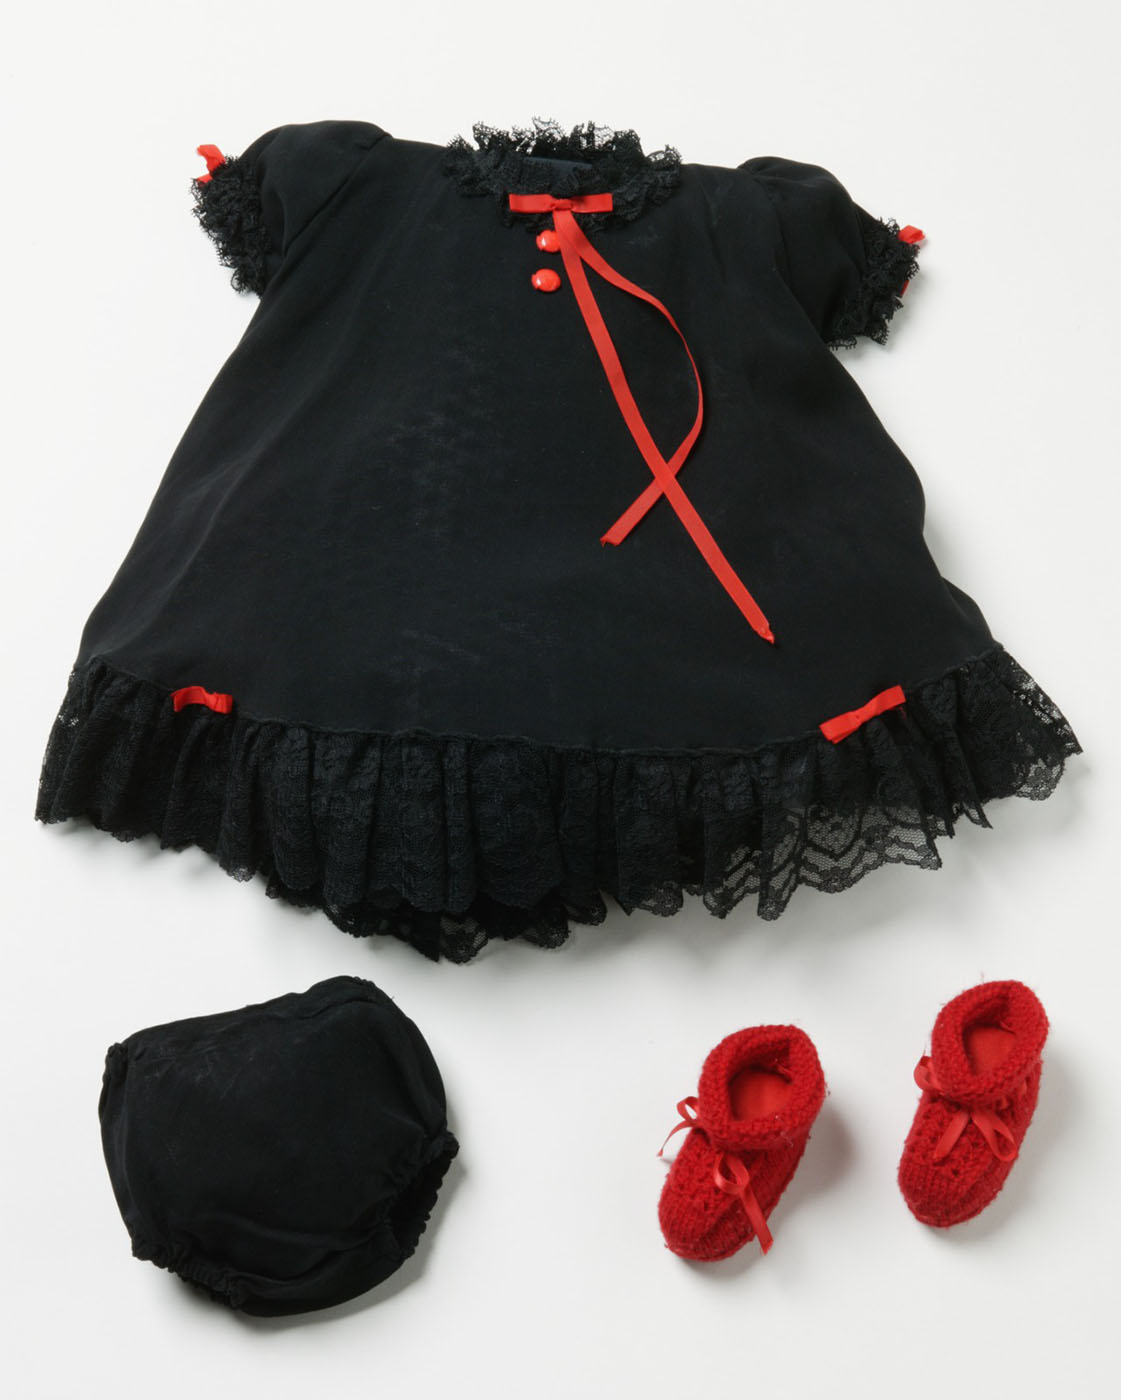 Small black dress with black lace trim at the neck, arms and bottom. Also has two thin red ribbon bows at the bottom and on the arms. Includes matching black bans and a pair of knitted red booties with red ribbon ties at the front. - click to view larger image